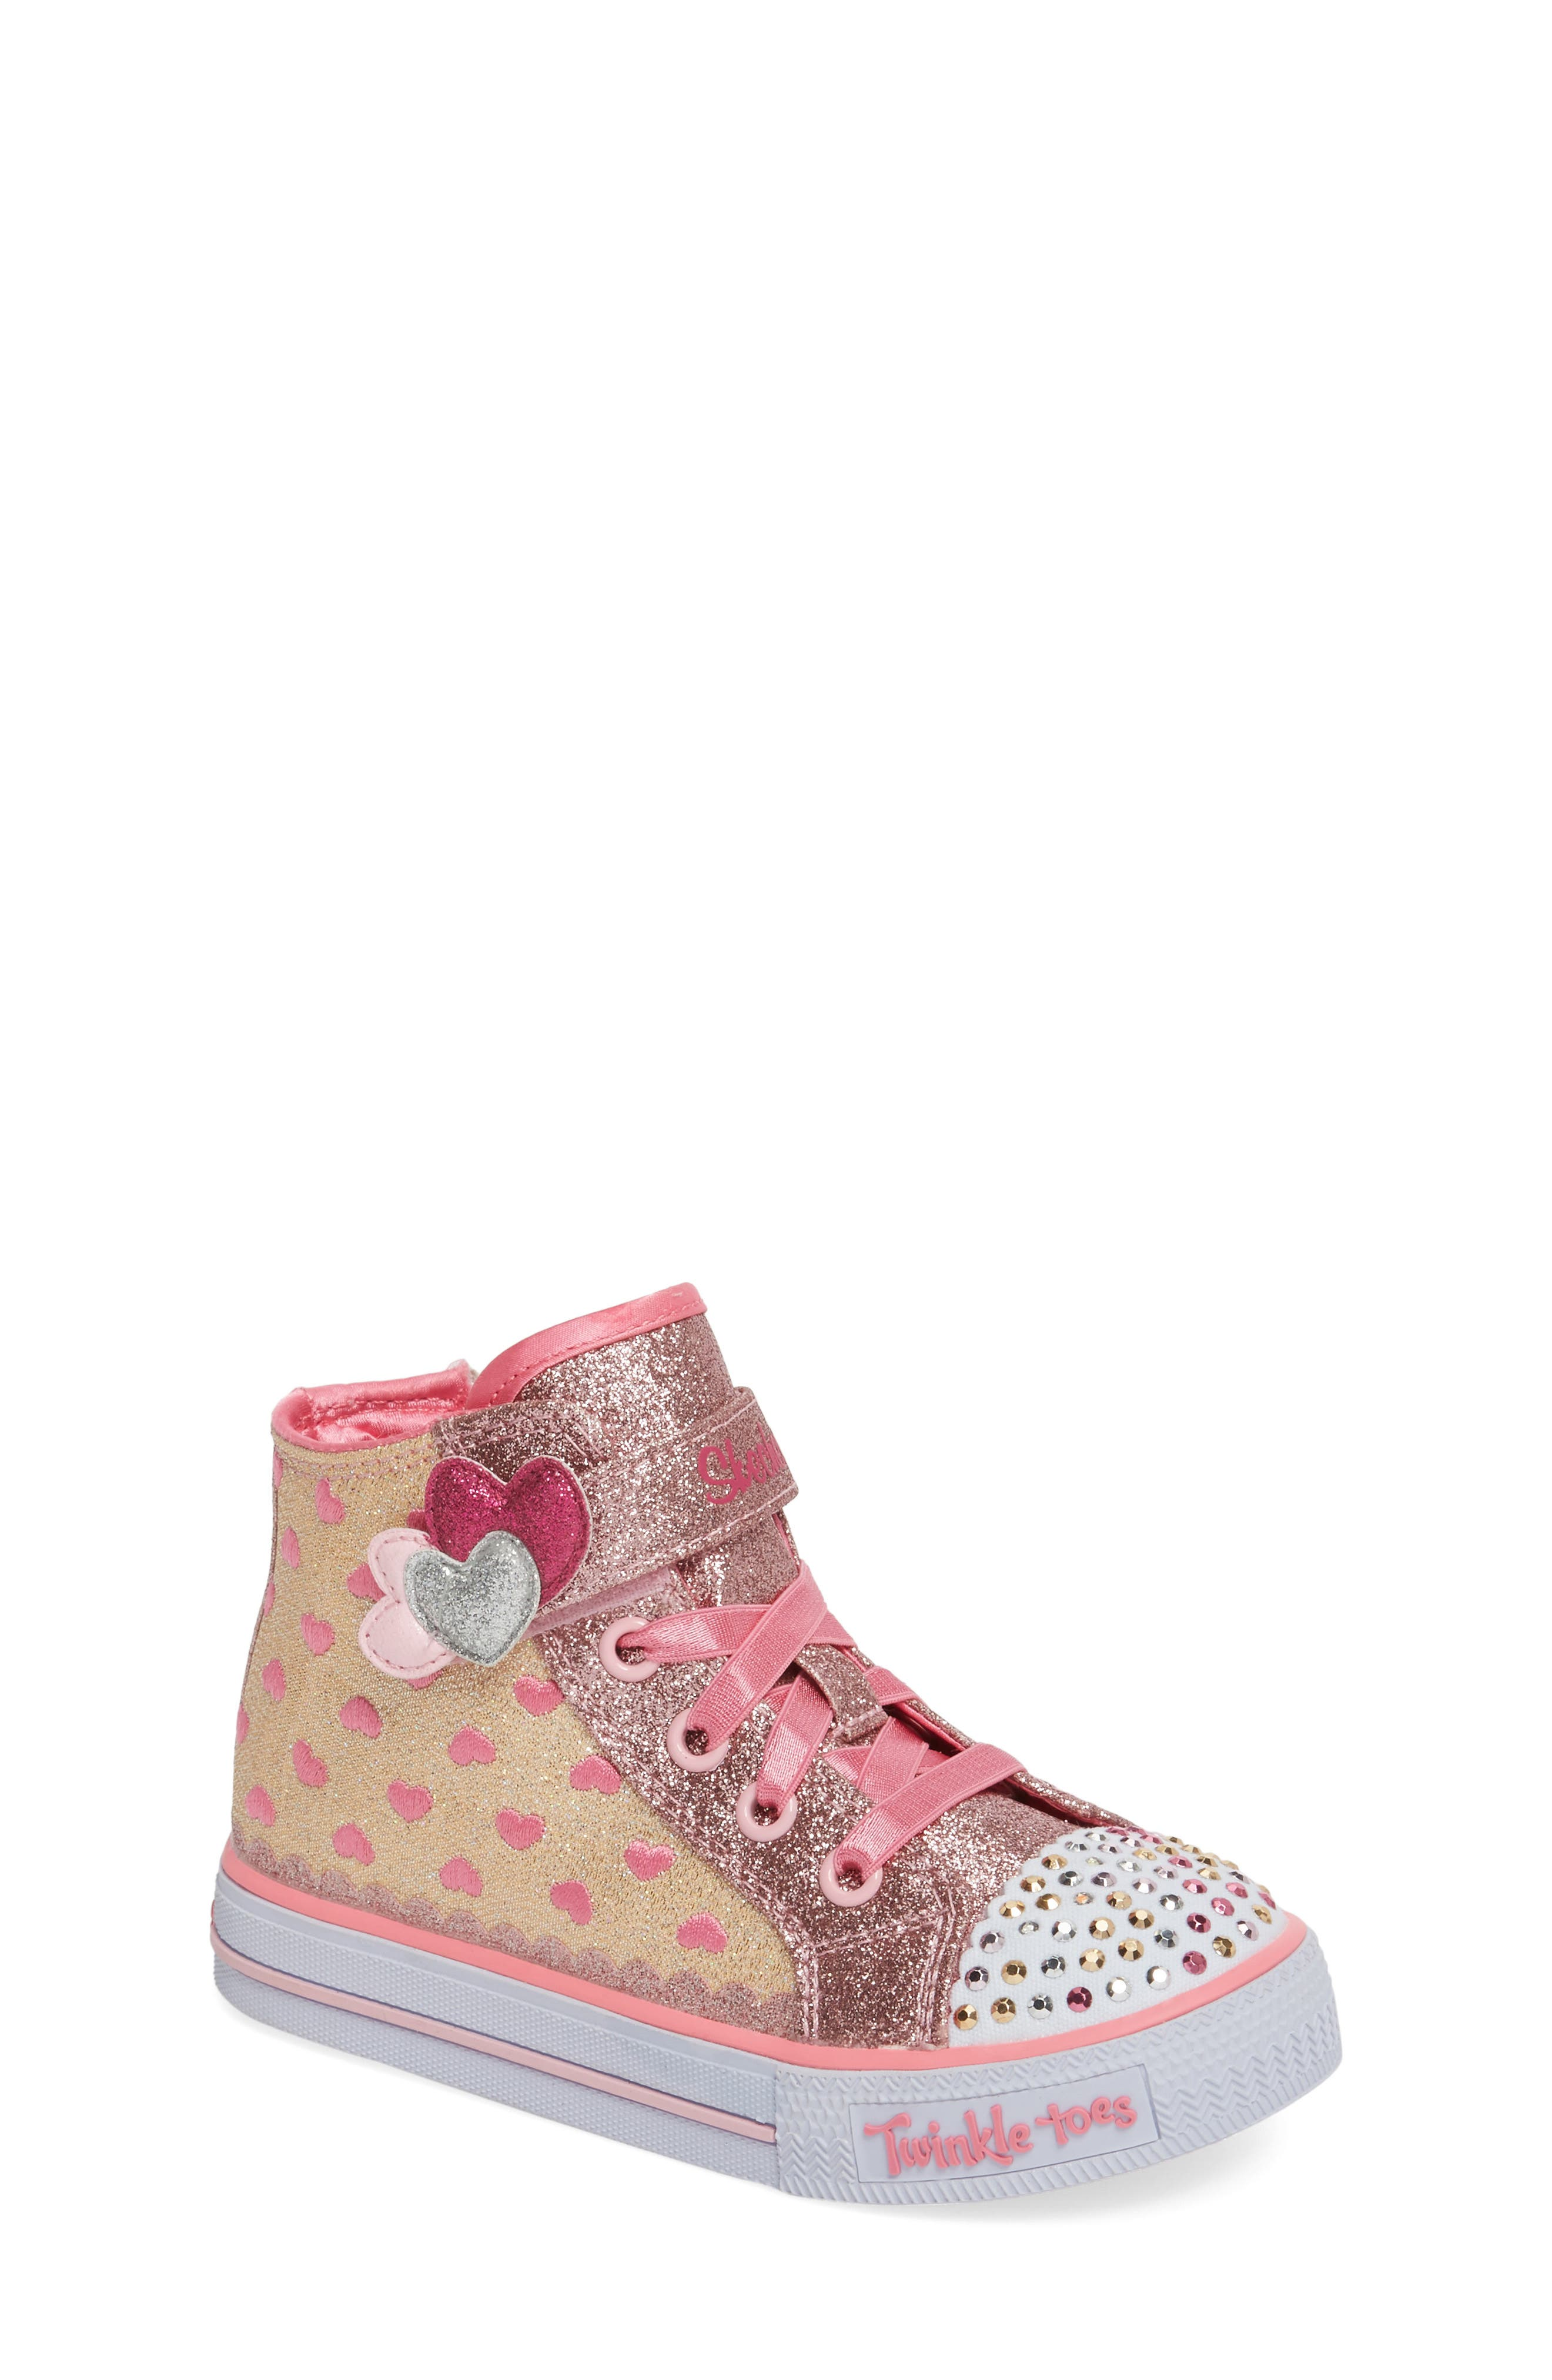 Twinkle Toes - Shuffles High Top Sneaker,                         Main,                         color, 225